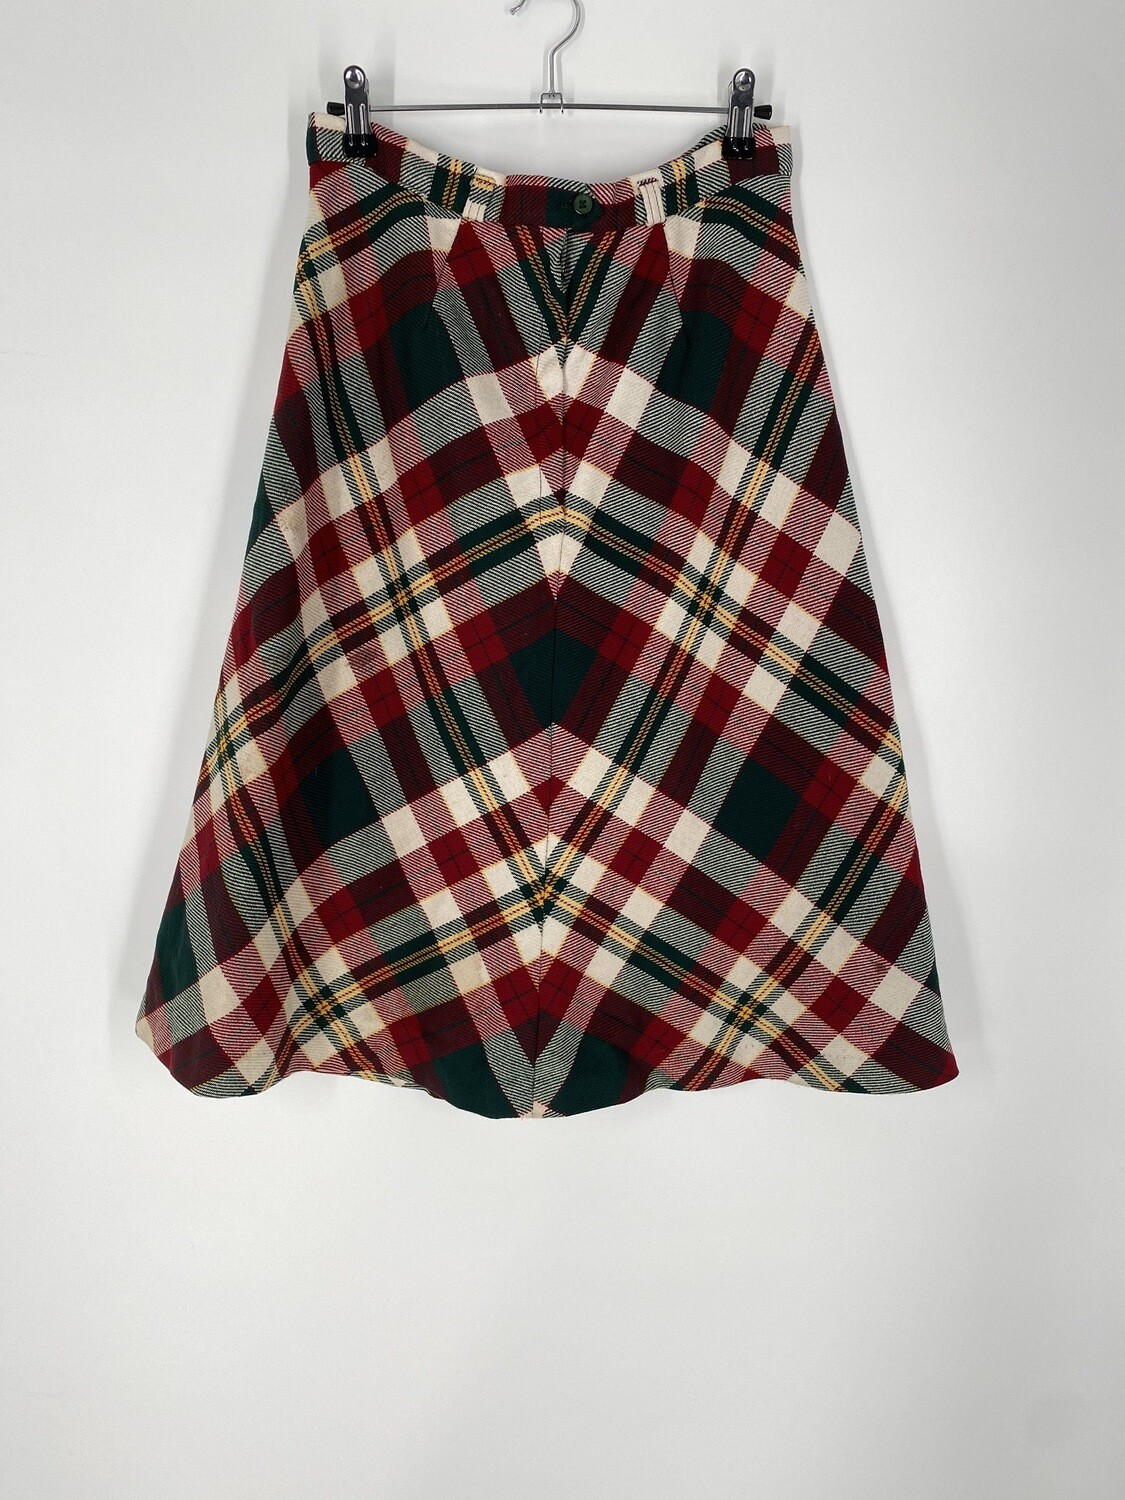 Green & Red Plaid Wool Skirt Size L